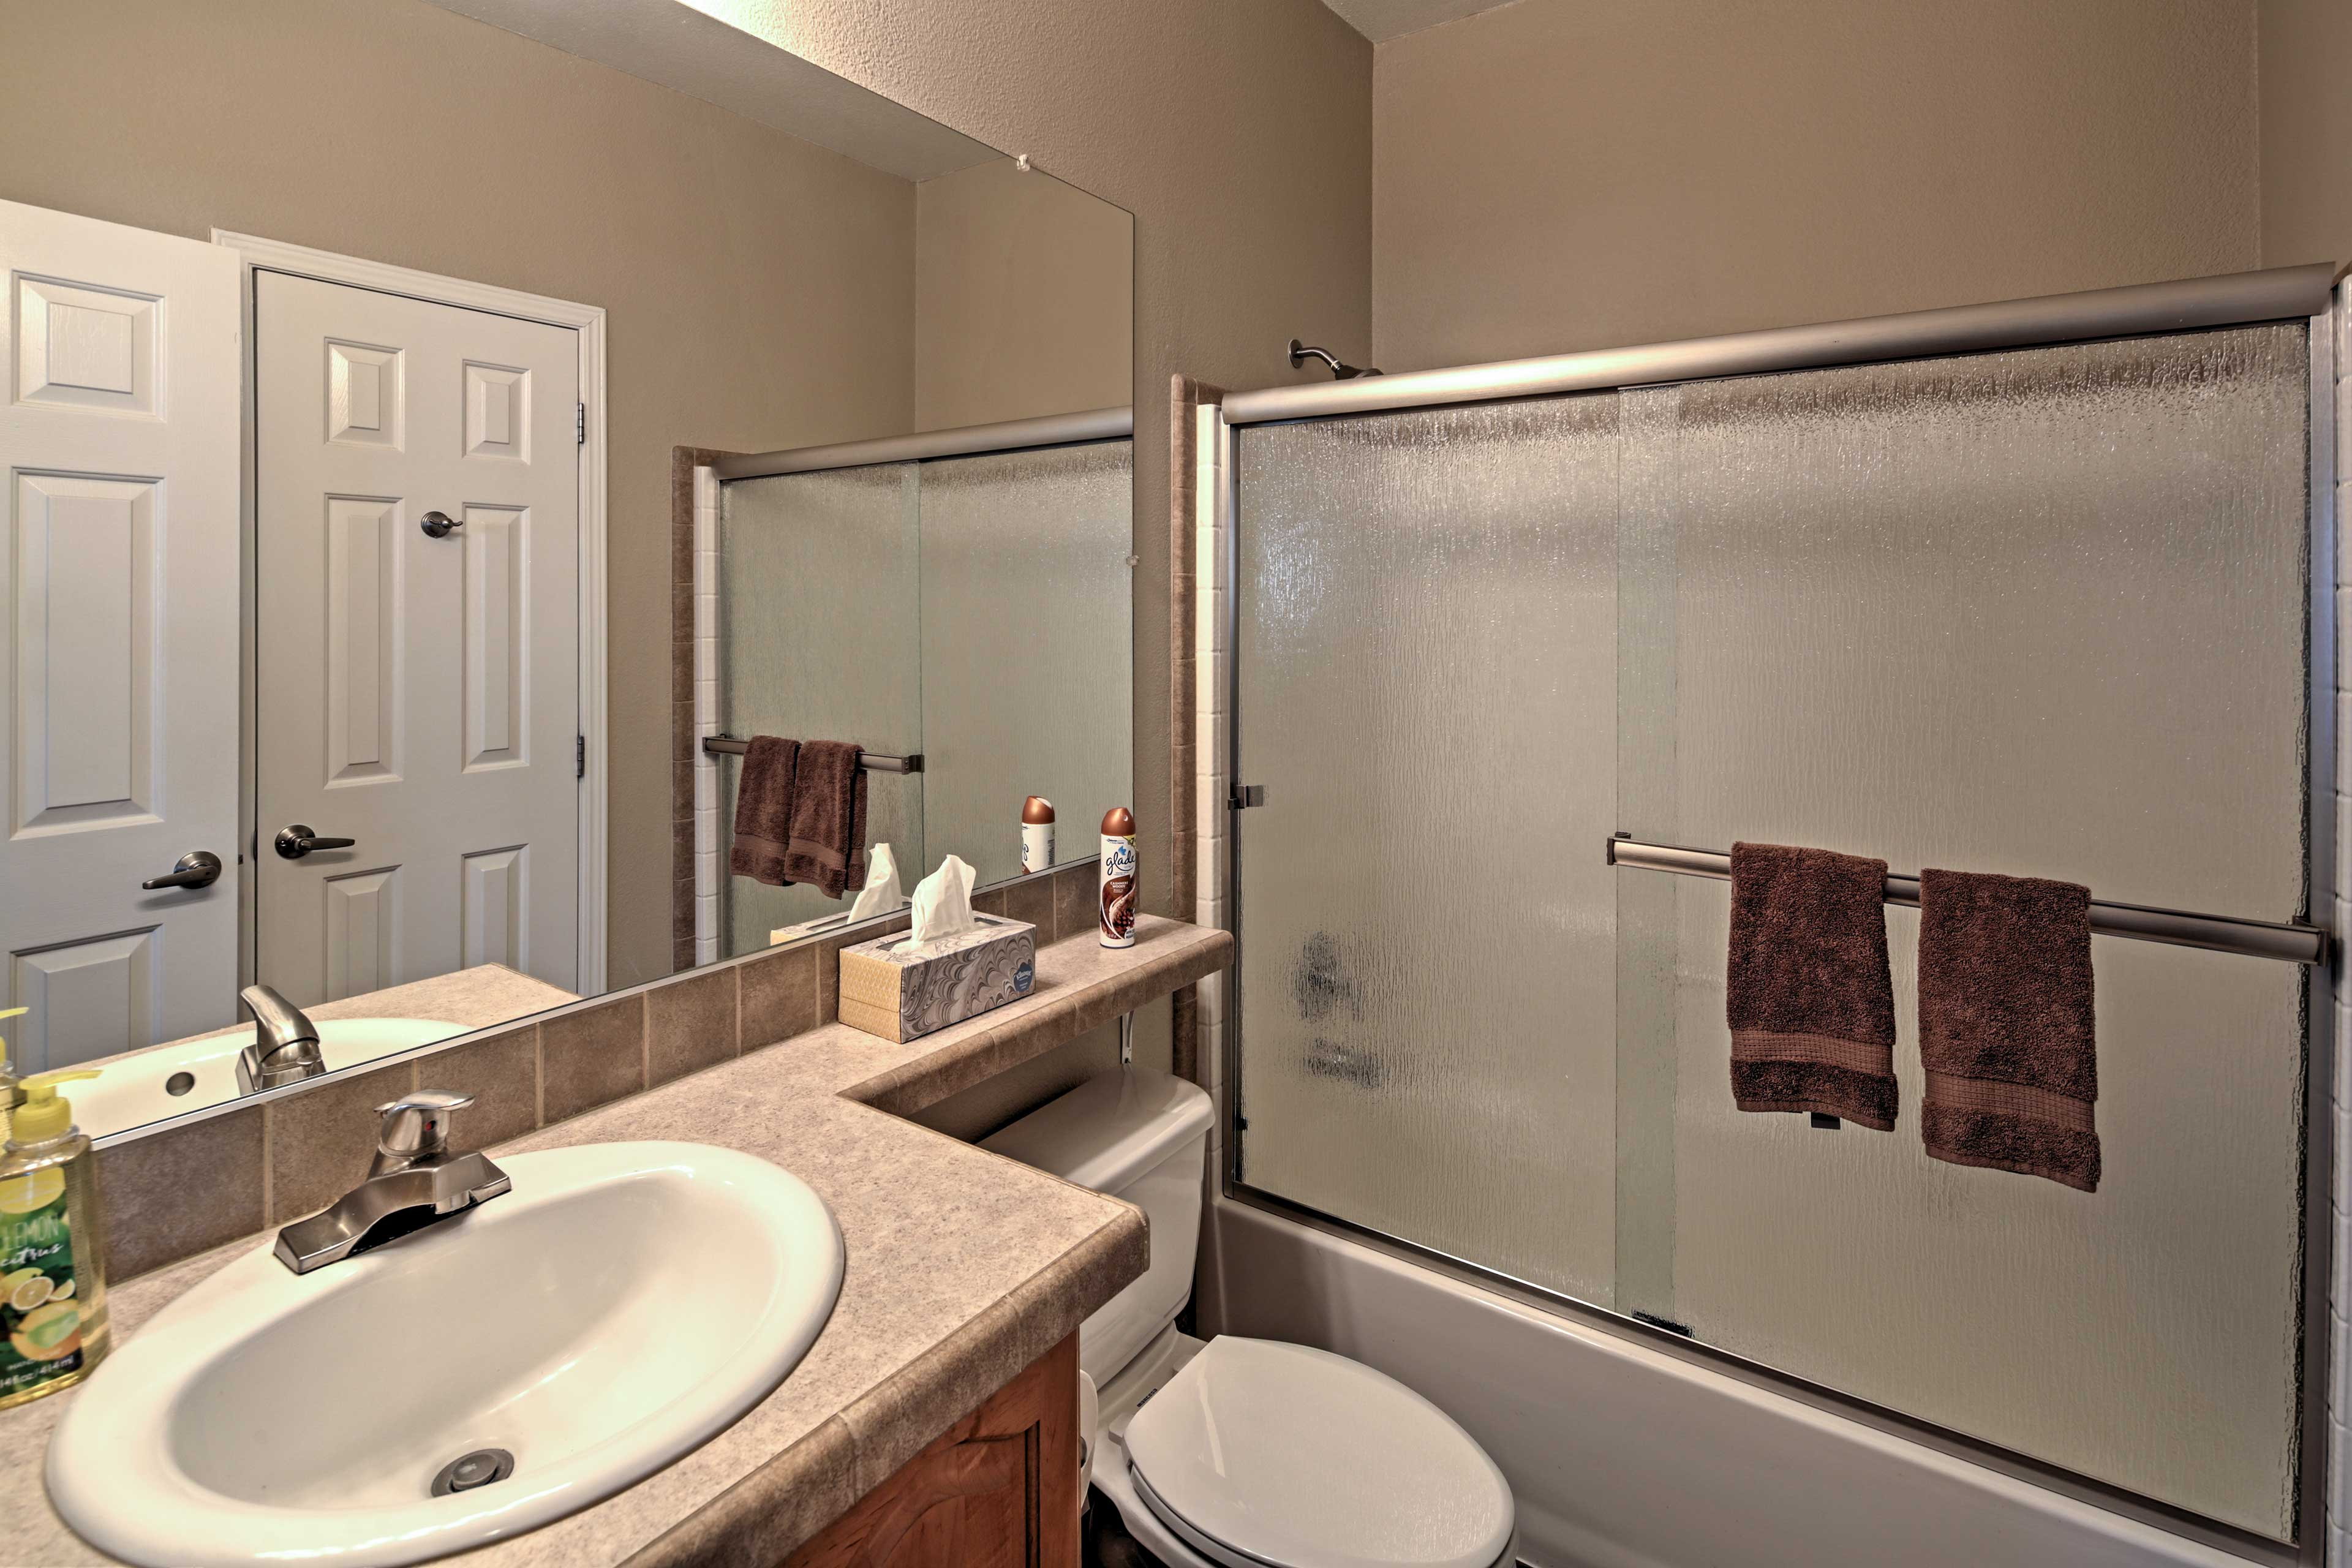 This full bathroom is complete with a shower/tub combo.